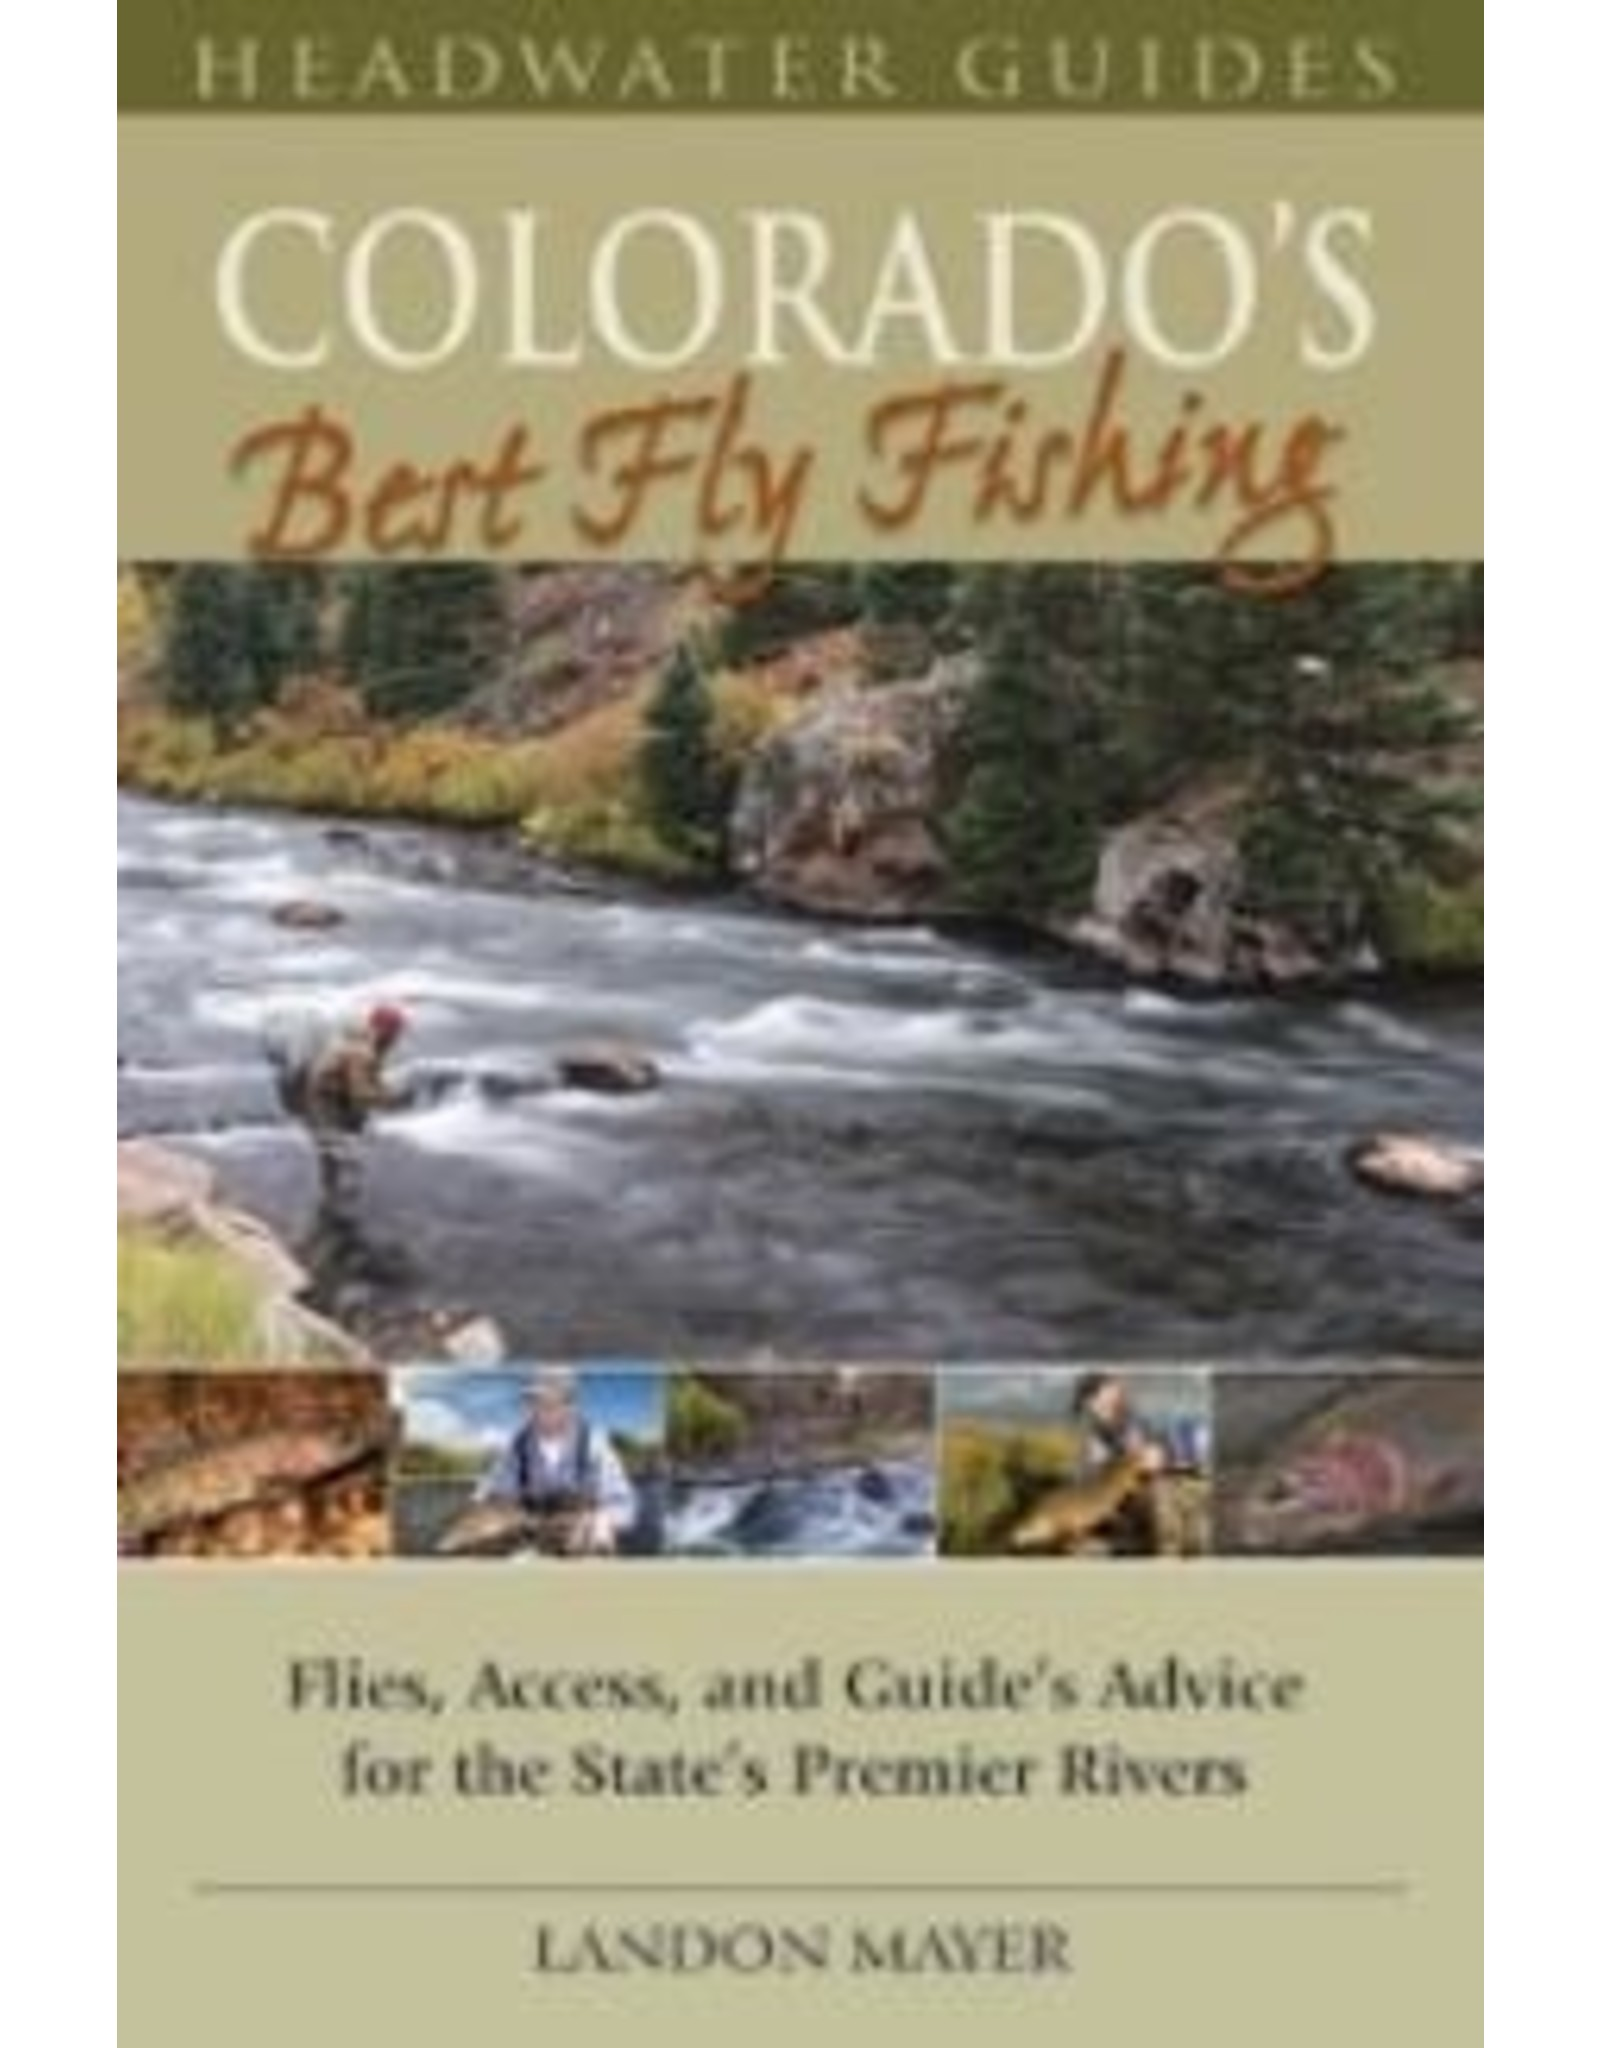 Books Colorado's Best Fly Fishing by Landon Mayer